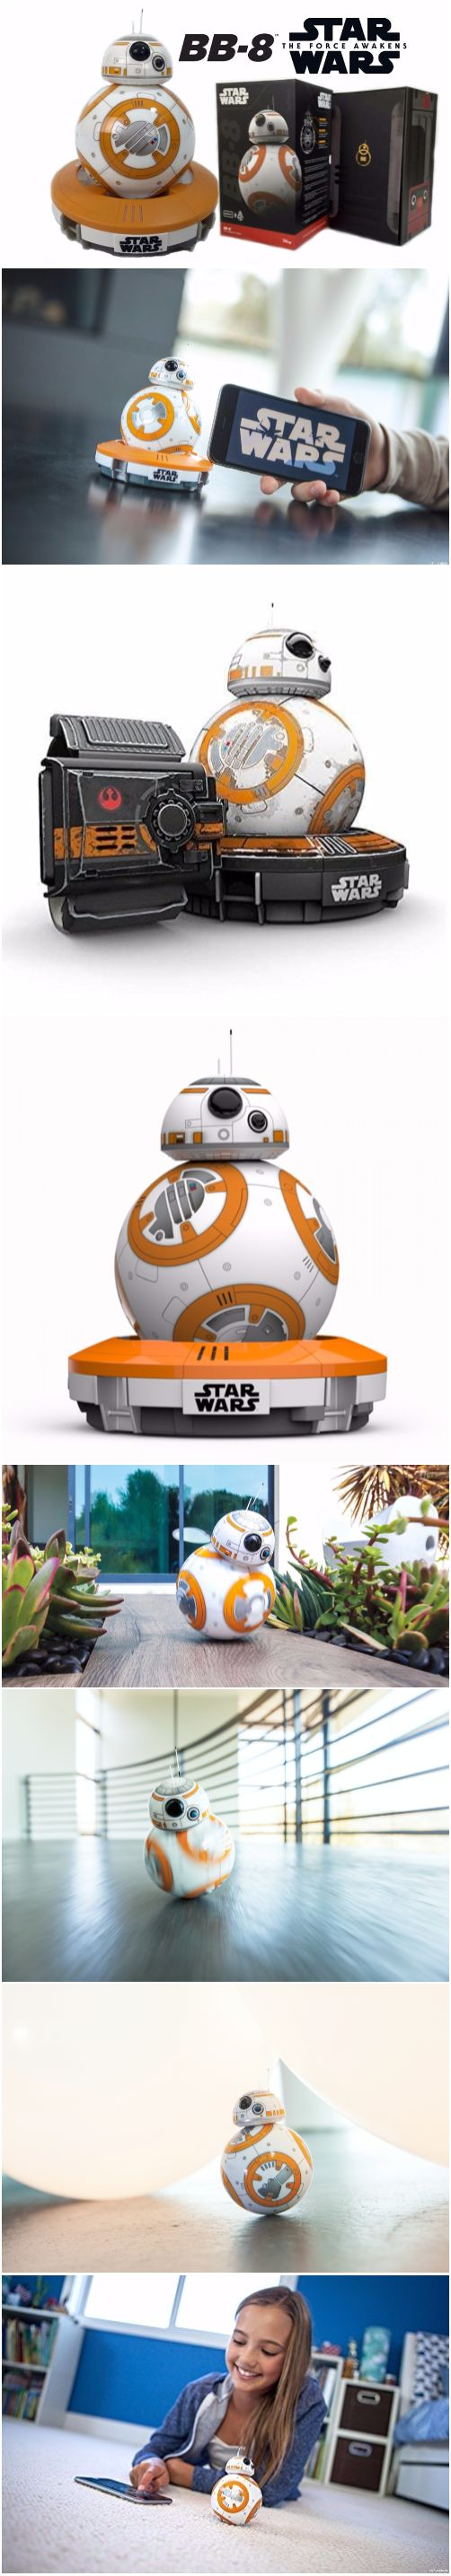 Sphero Star Wars BB-8 App Controlled Robot BB-8 app-enabled Droid with a tough and waterproof polycarbonate shell Bluetooth Smart connection allowing Gyroscopic propulsion to a 30m range Induction charging stand providing 60 minute battery life Compatible with the Force Band for control via gestures Free iOS & Android compatible apps; allow Adaptive Personality and view holographic #recordings #Sphero #StarWars# BB-8 App #Controlled #Robot